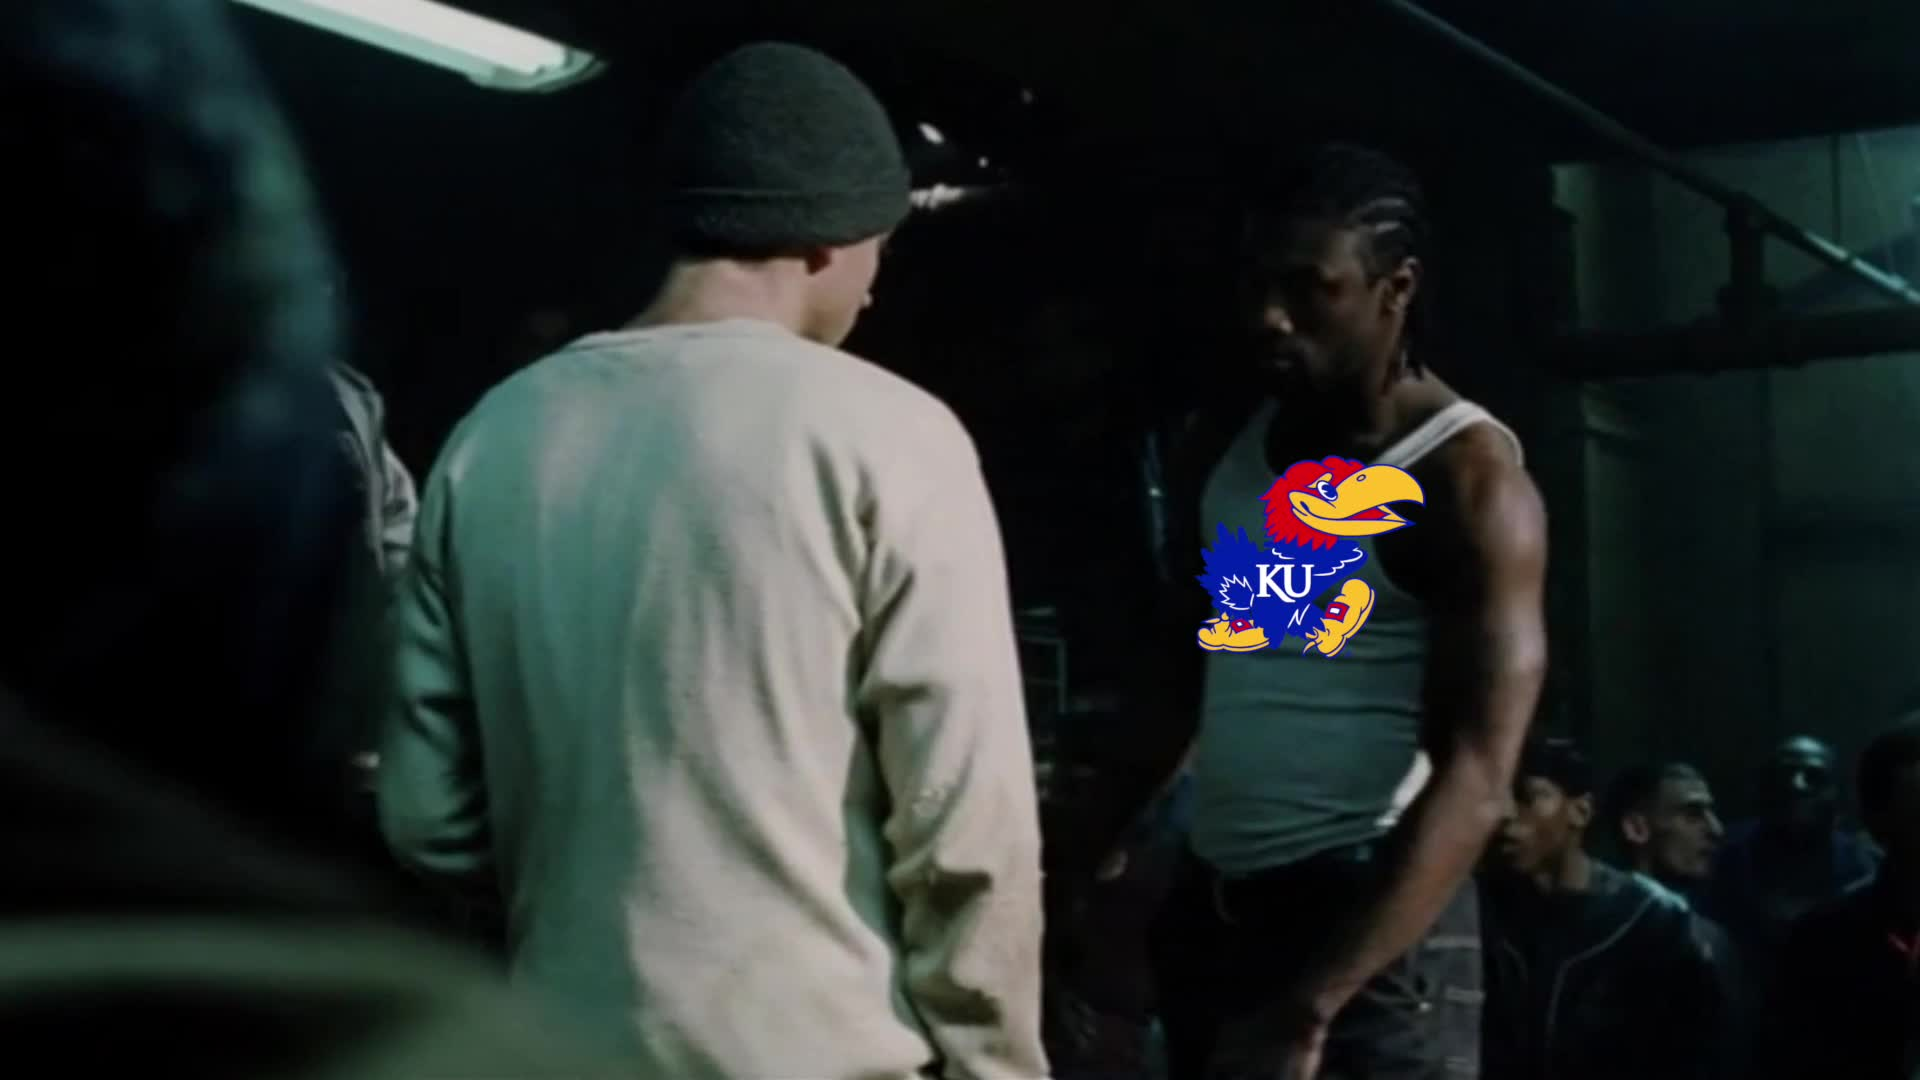 8 Mile, College Basketball, Gif War, K-State, Rap Battle Part 1 GIFs